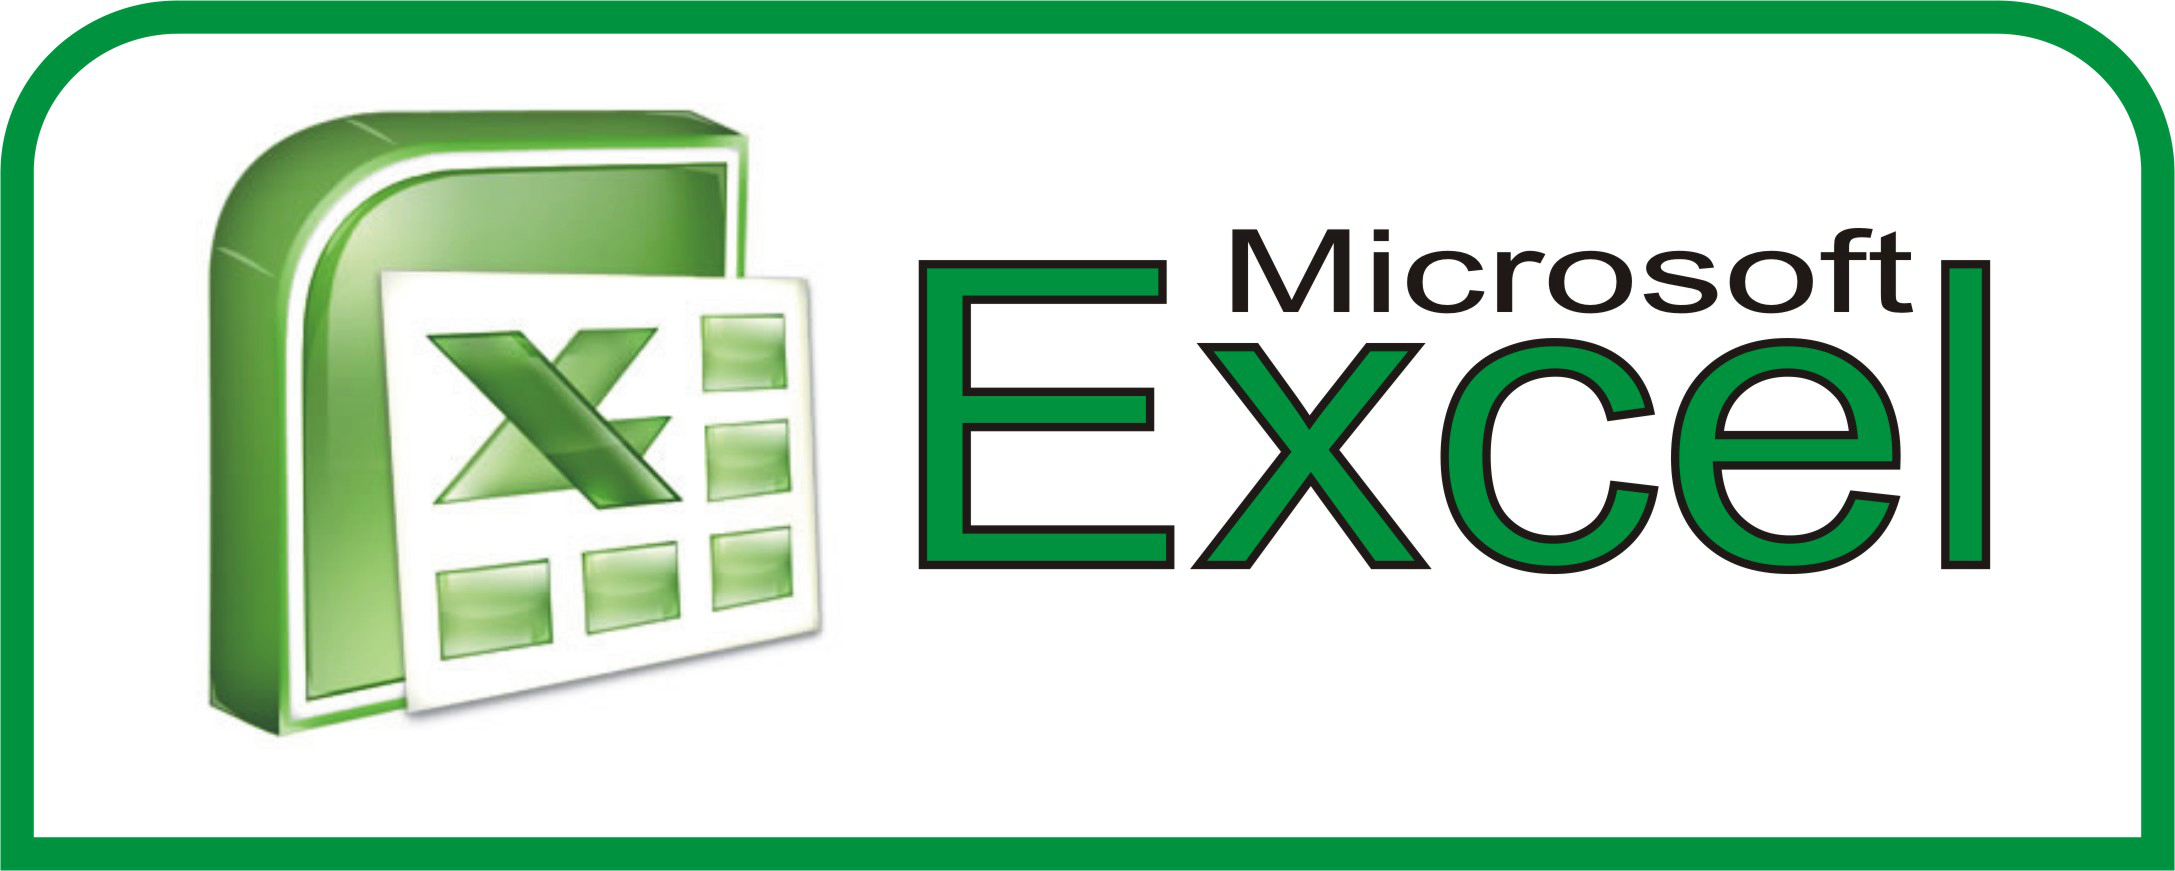 Ediblewildsus  Terrific  Excel Shortcuts You Probably Didnt Know About  Techdissected With Fetching How To Add Cells In Excel Besides Excel Homes Furthermore Superscript In Excel With Lovely Drop Down Menu In Excel Also Vlookup Excel  In Addition Excel Index Function And Excel Tutorials As Well As If Or Excel Additionally Excel Dashboard From Techdissectedcom With Ediblewildsus  Fetching  Excel Shortcuts You Probably Didnt Know About  Techdissected With Lovely How To Add Cells In Excel Besides Excel Homes Furthermore Superscript In Excel And Terrific Drop Down Menu In Excel Also Vlookup Excel  In Addition Excel Index Function From Techdissectedcom